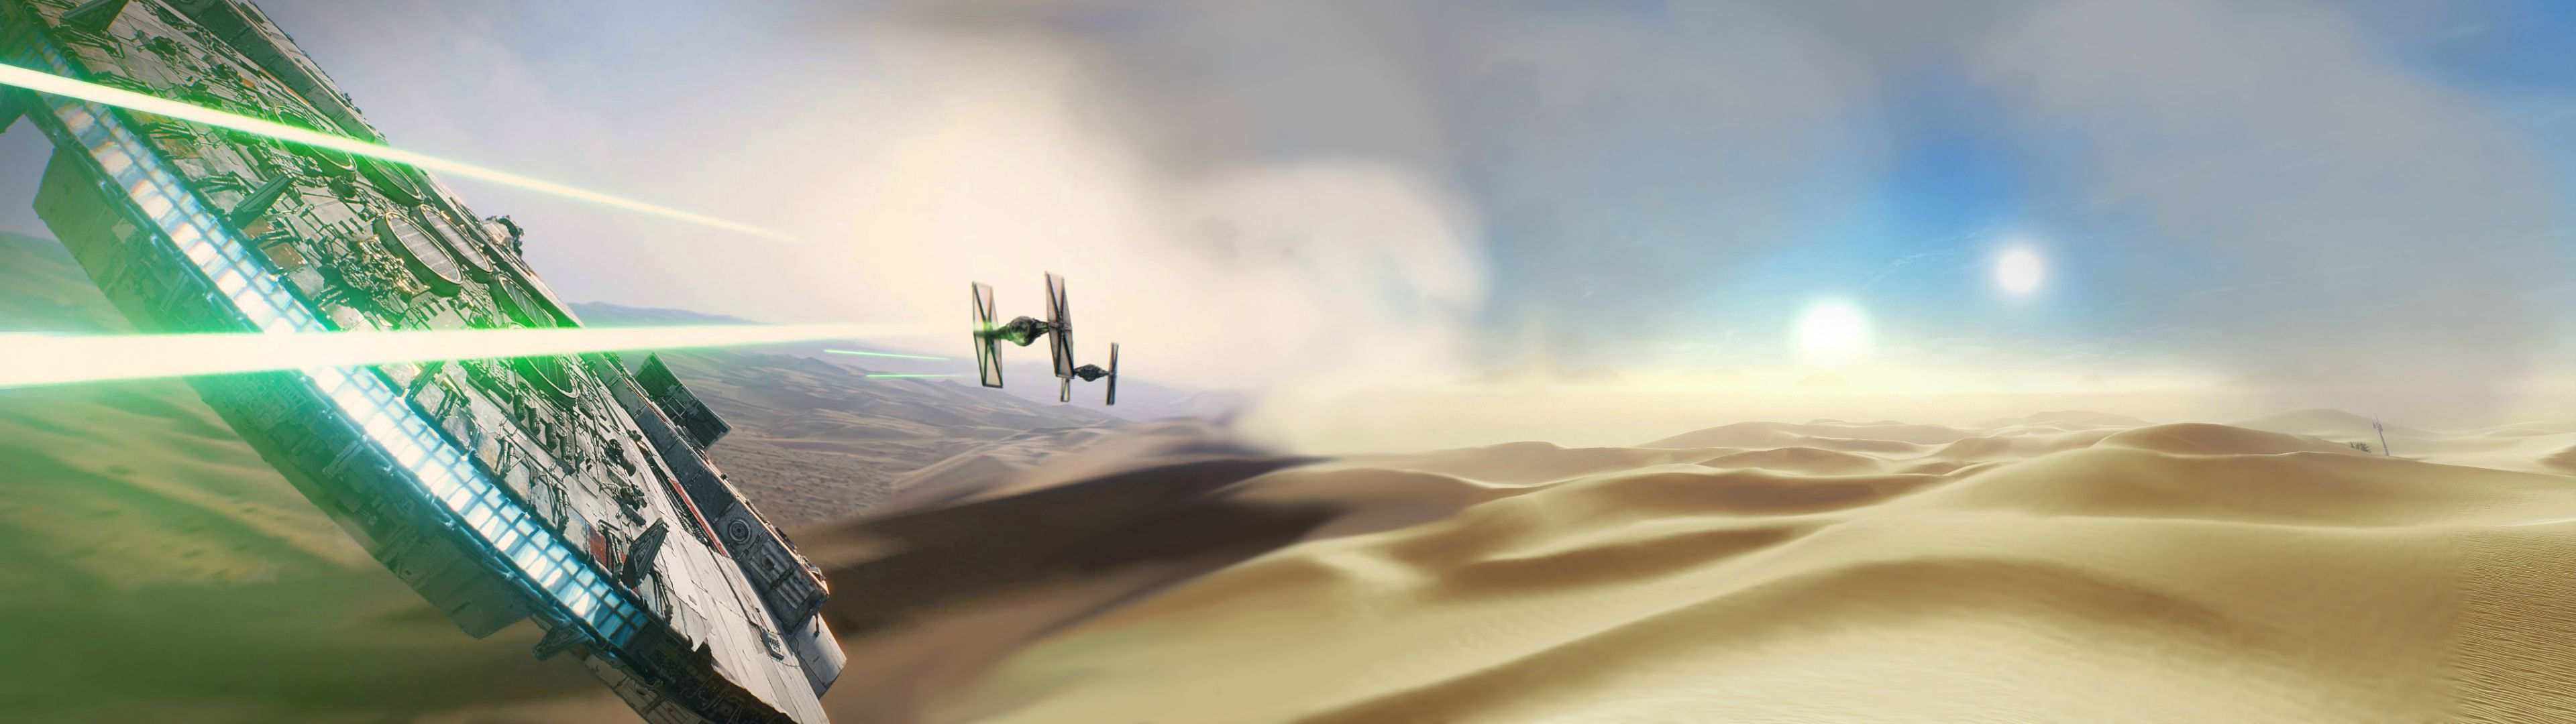 3840x1080 wallpaper star wars.